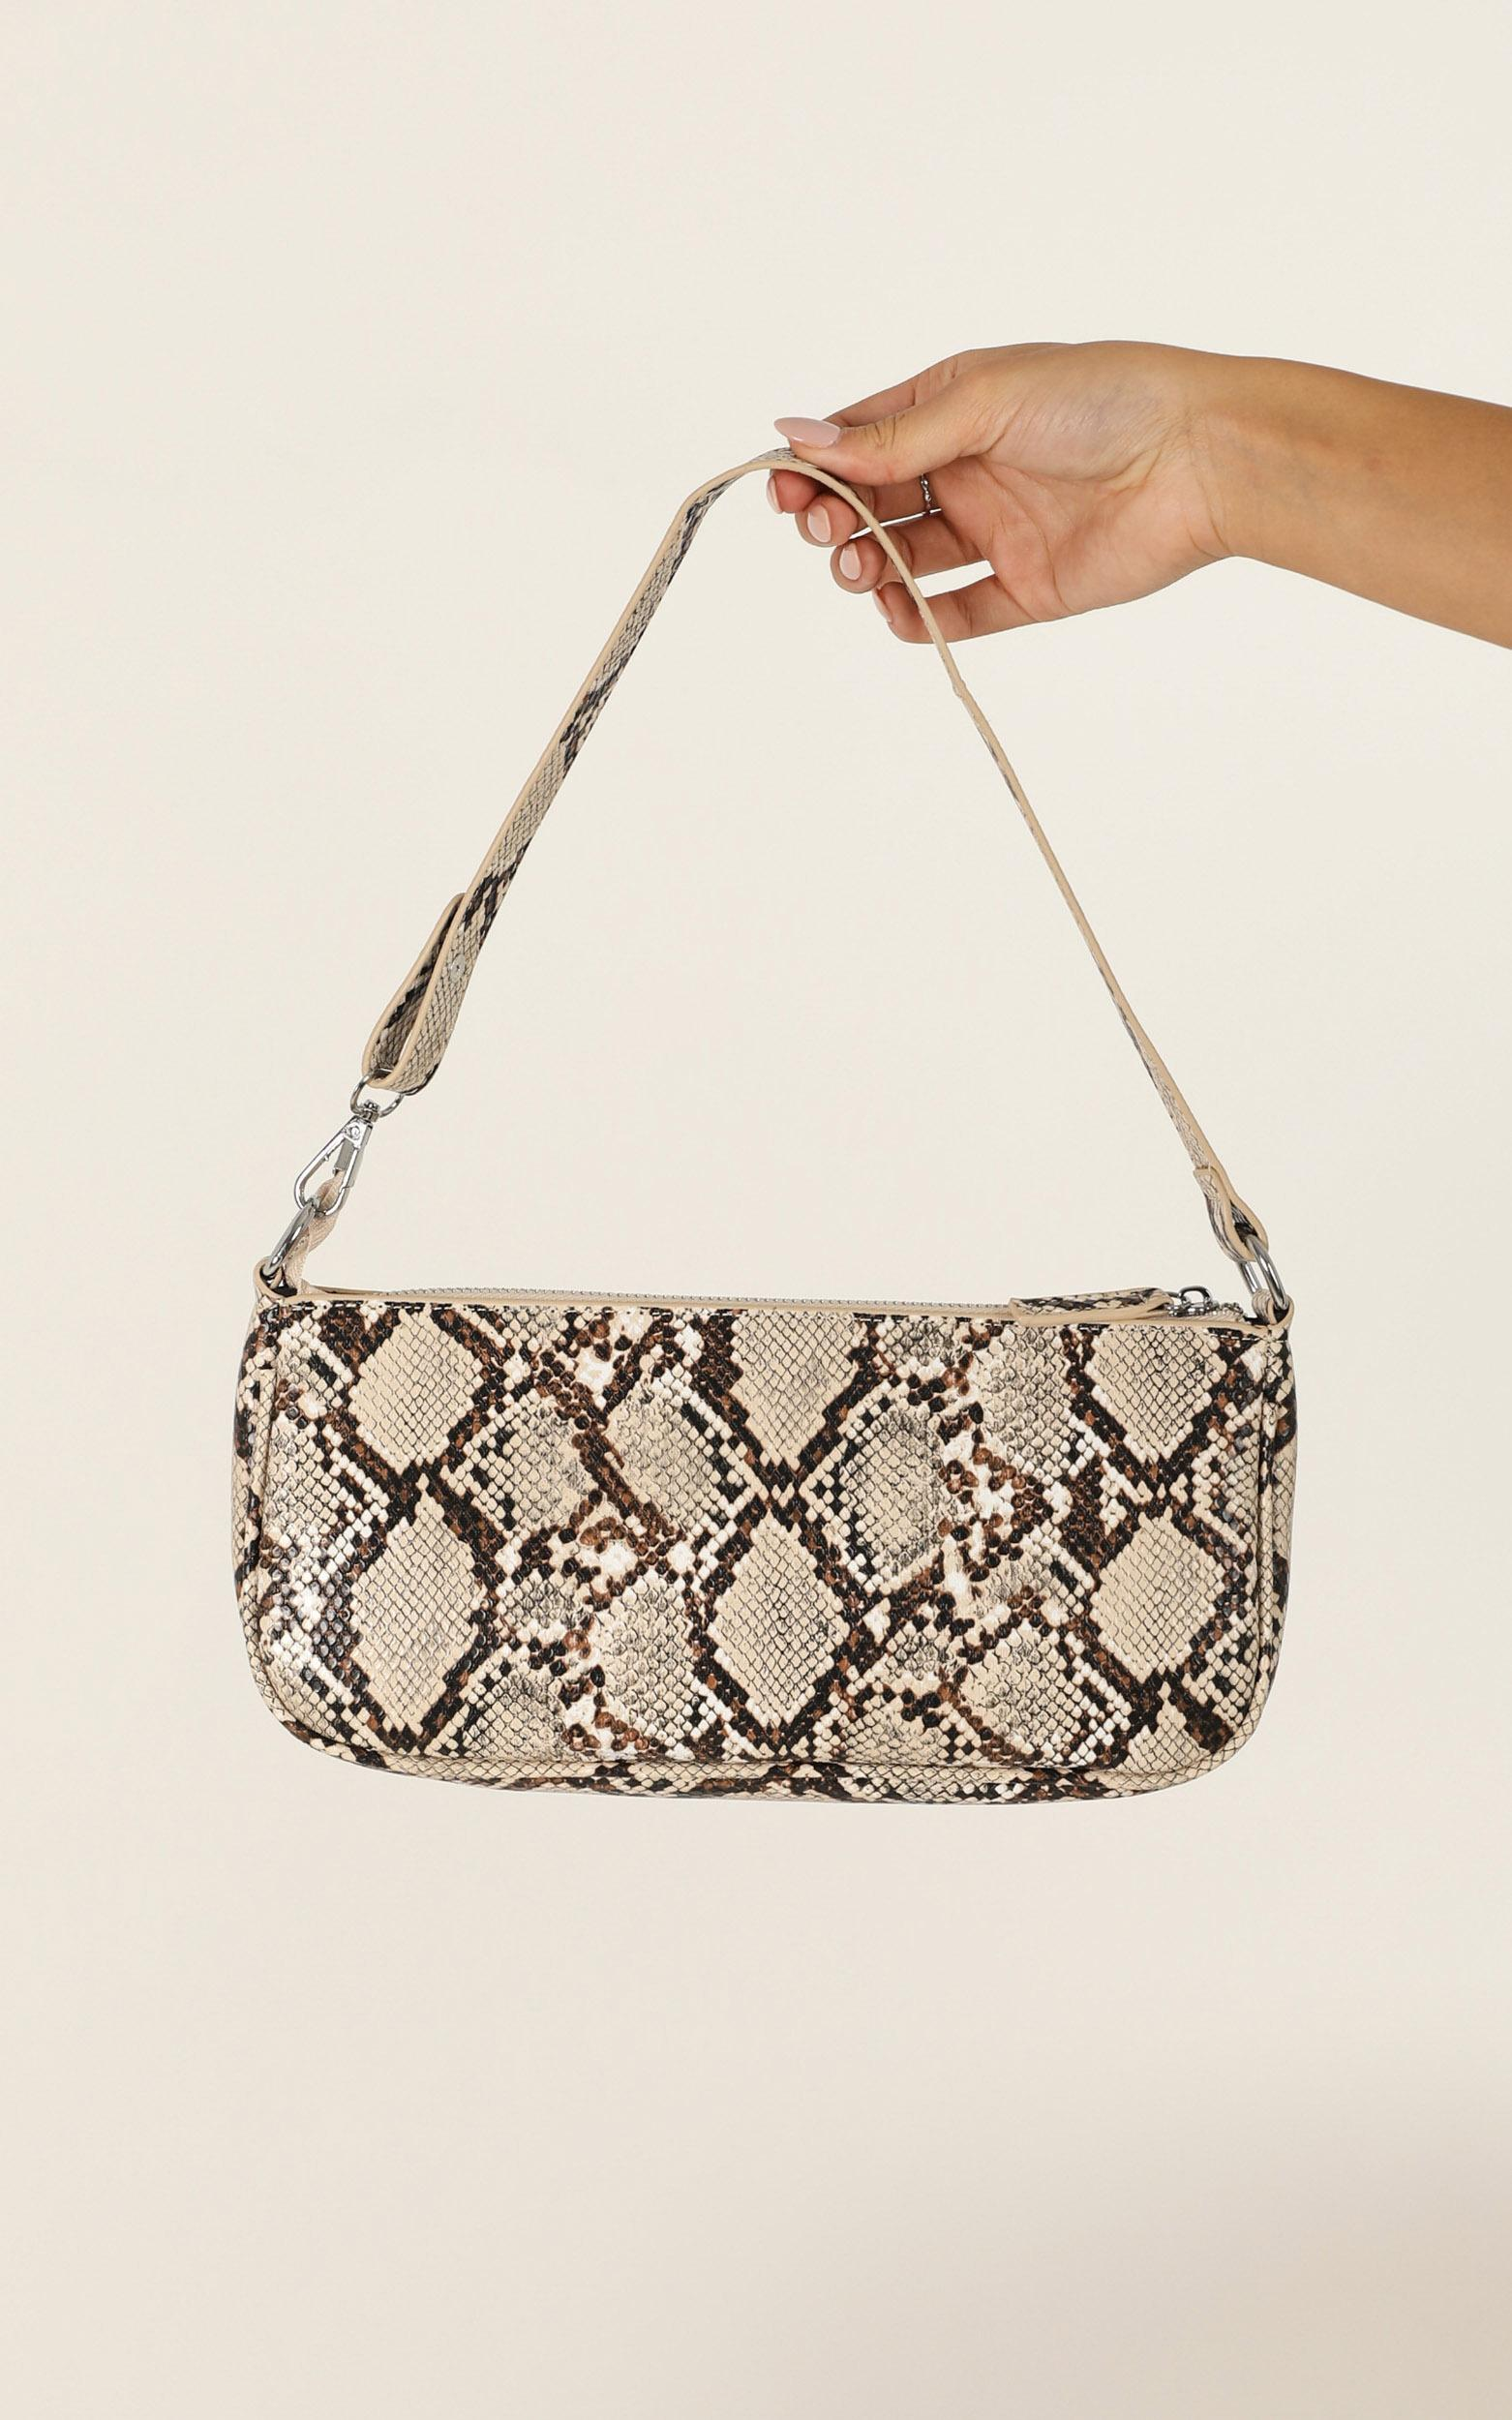 Save My Love Bag In Snake, Grey, hi-res image number null